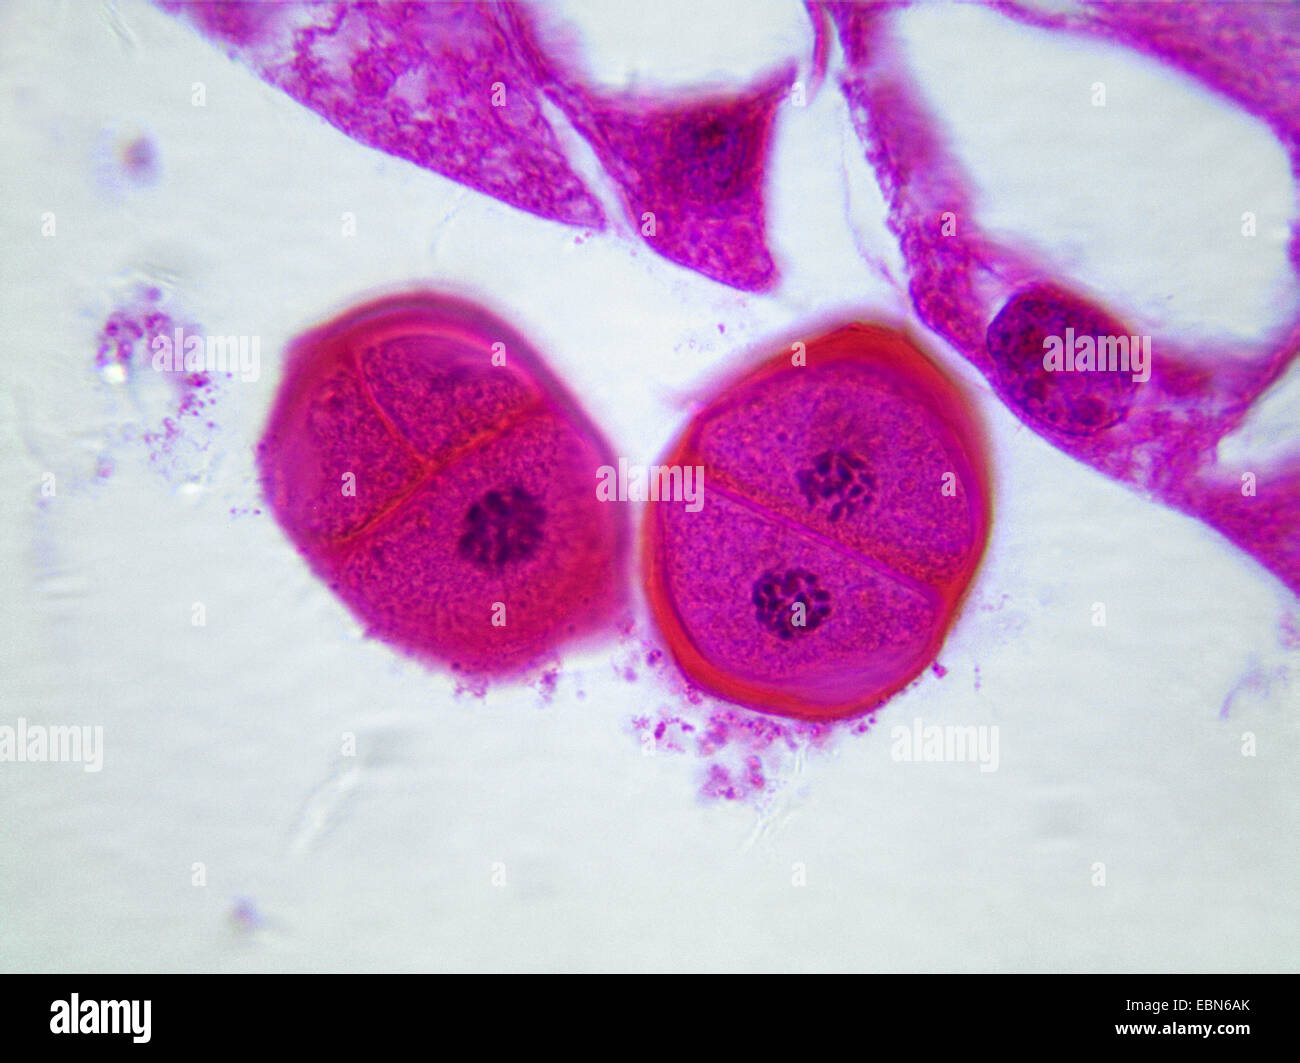 lily (Lilium spec.), cross section of the stamen of an lily with cell divisions, 1000 x - Stock Image